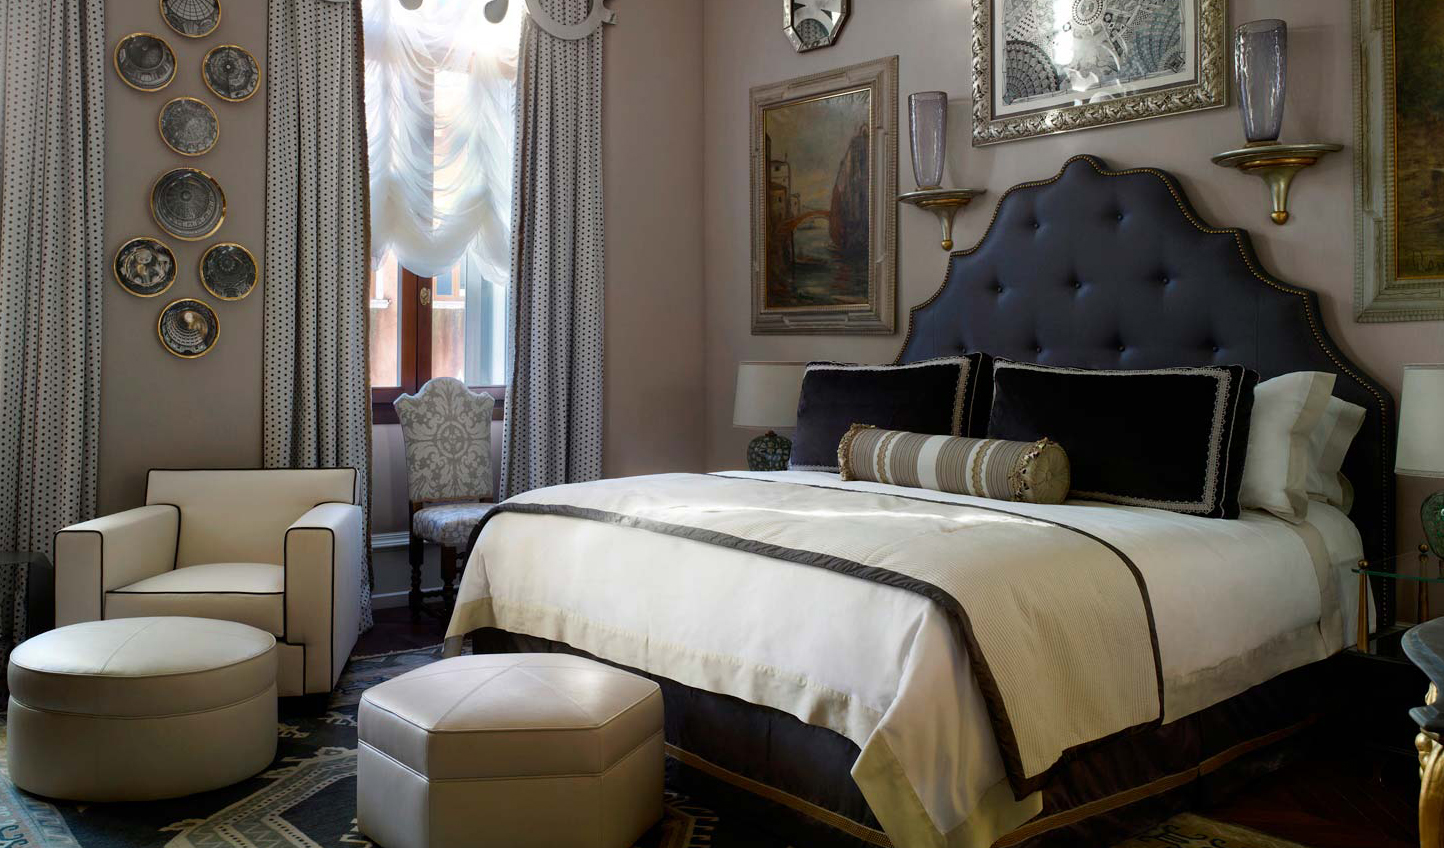 A slice of Venice's artistic heritage in the Peggy Guggenheim Suite